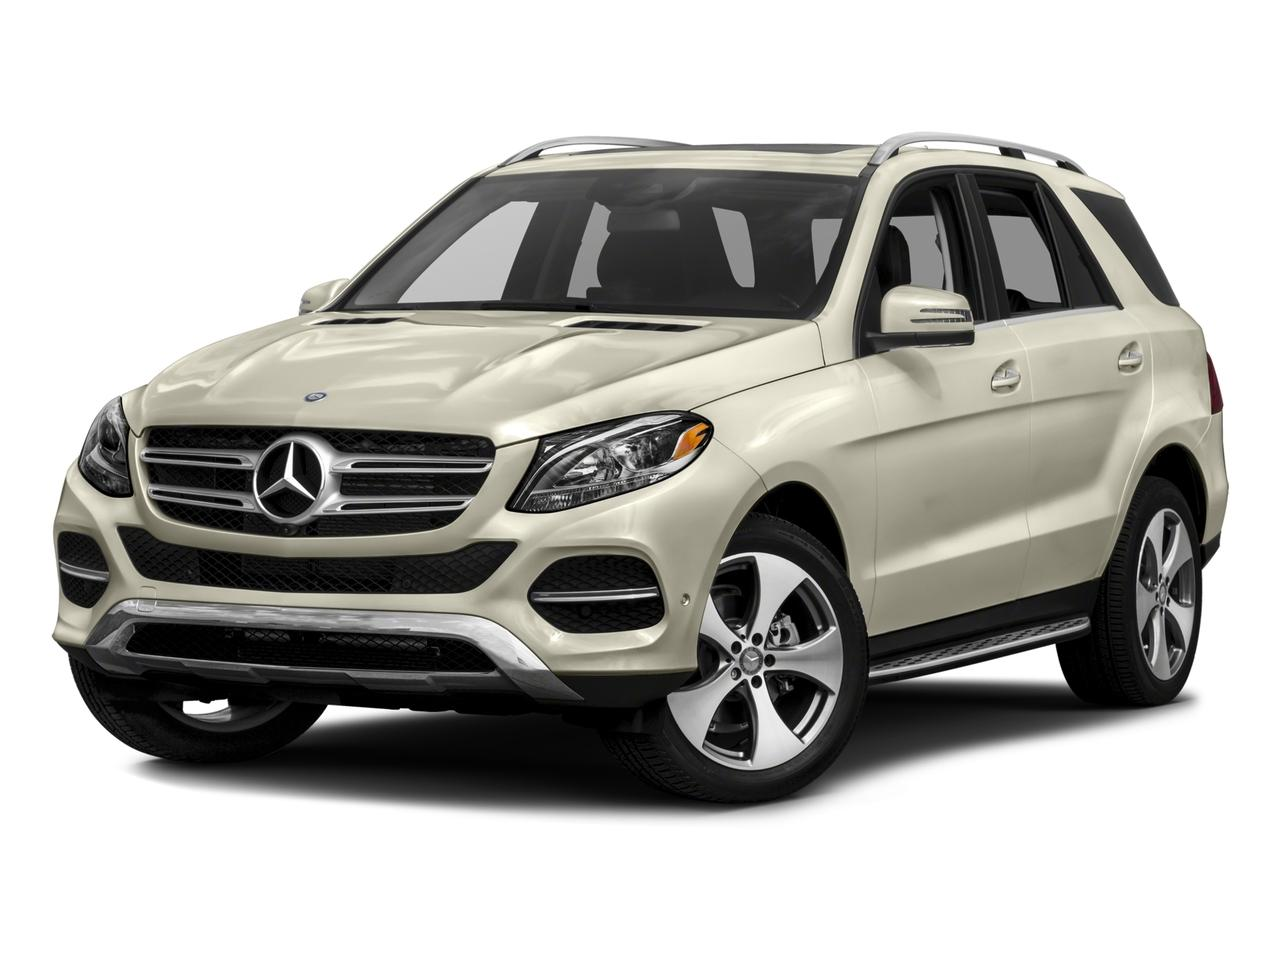 2016 Mercedes-Benz GLE Vehicle Photo in Bend, OR 97701